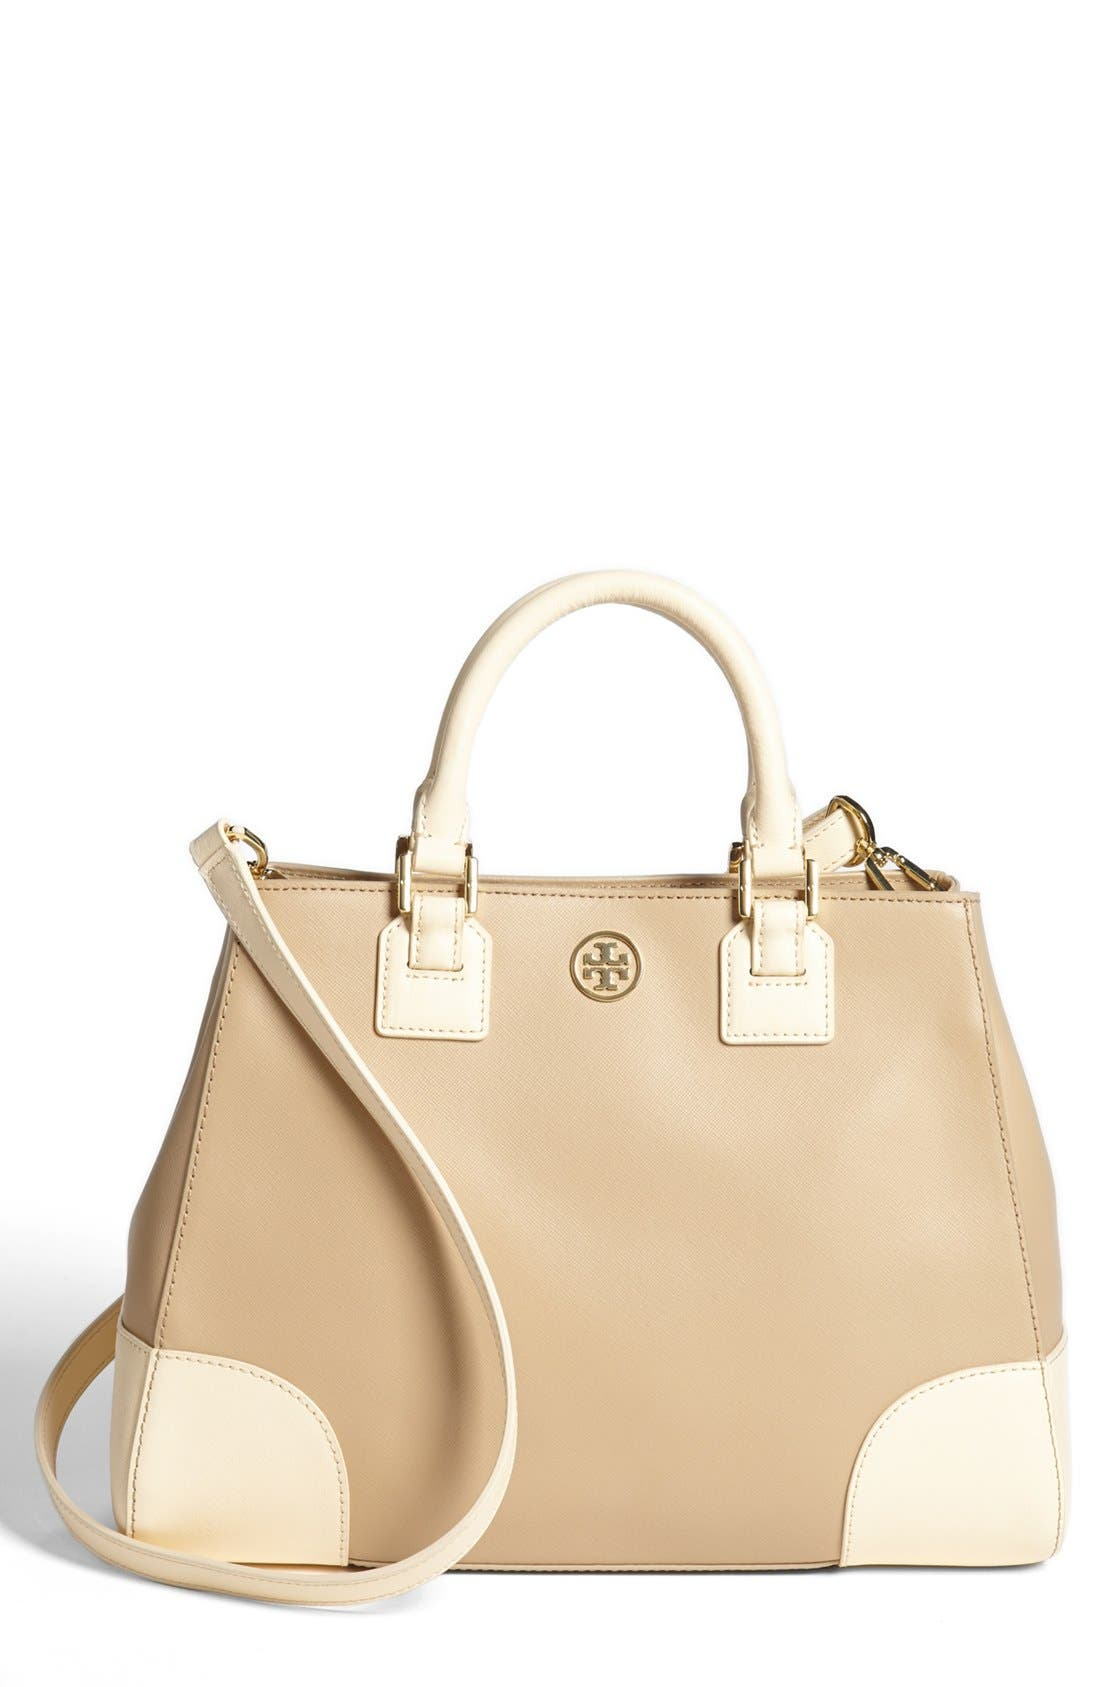 Main Image - Tory Burch 'Robinson' Triangle Tote